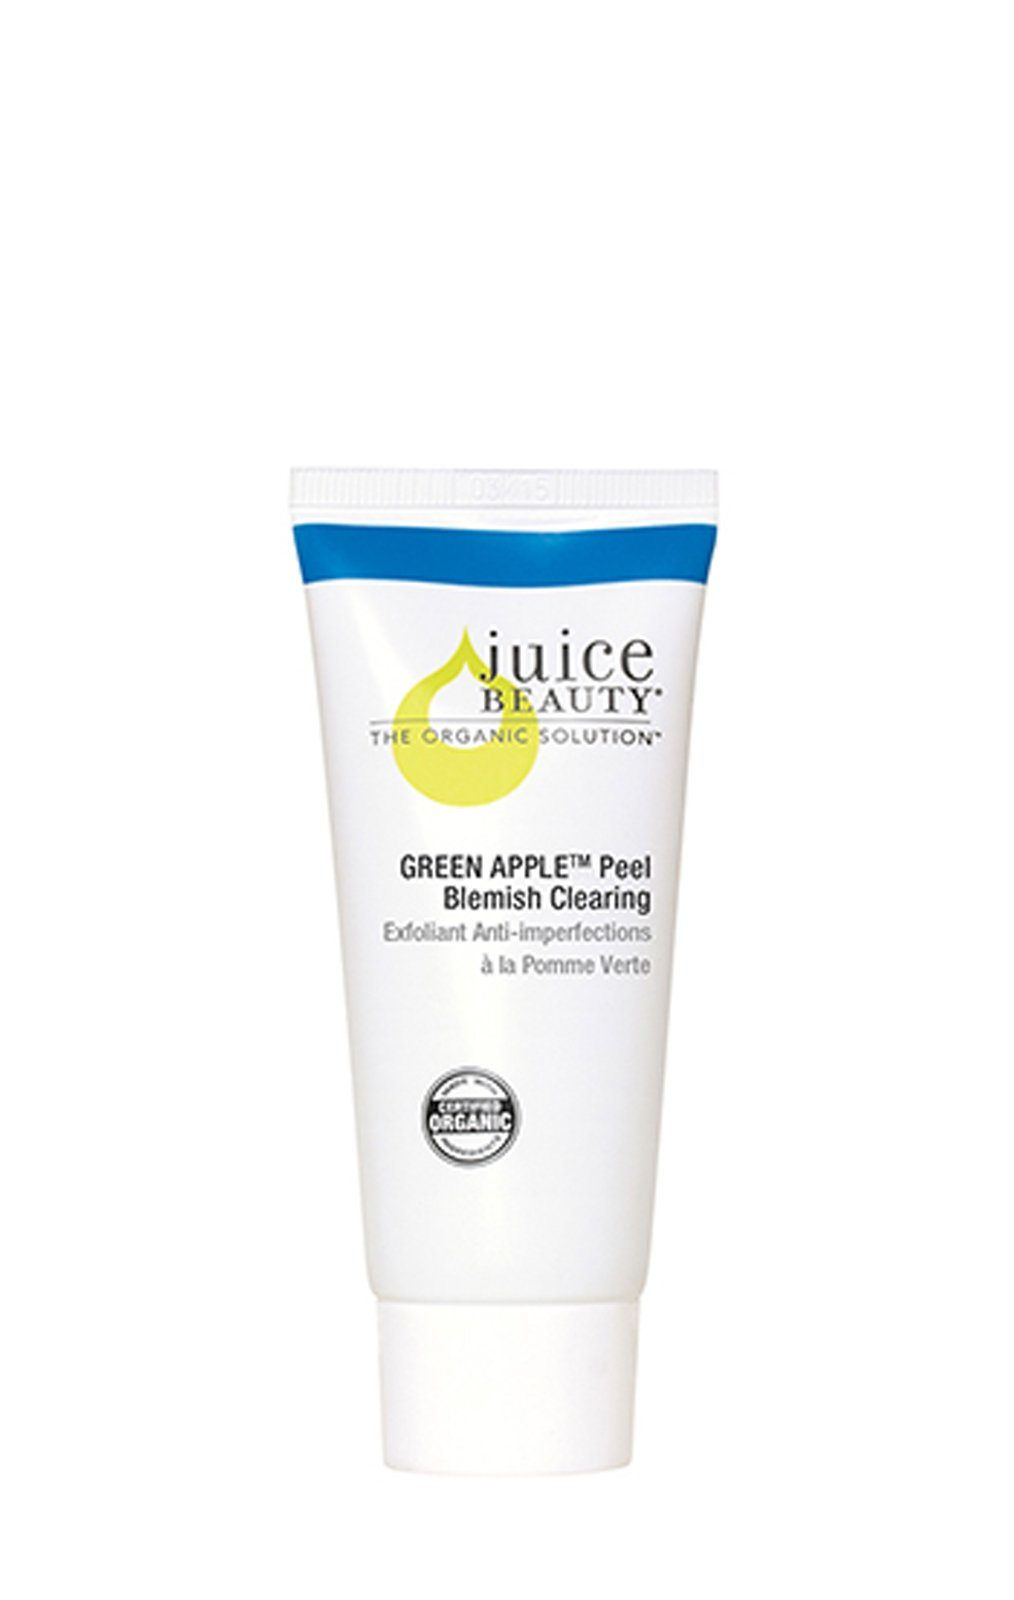 Green Apple Blemish Clearing Peel